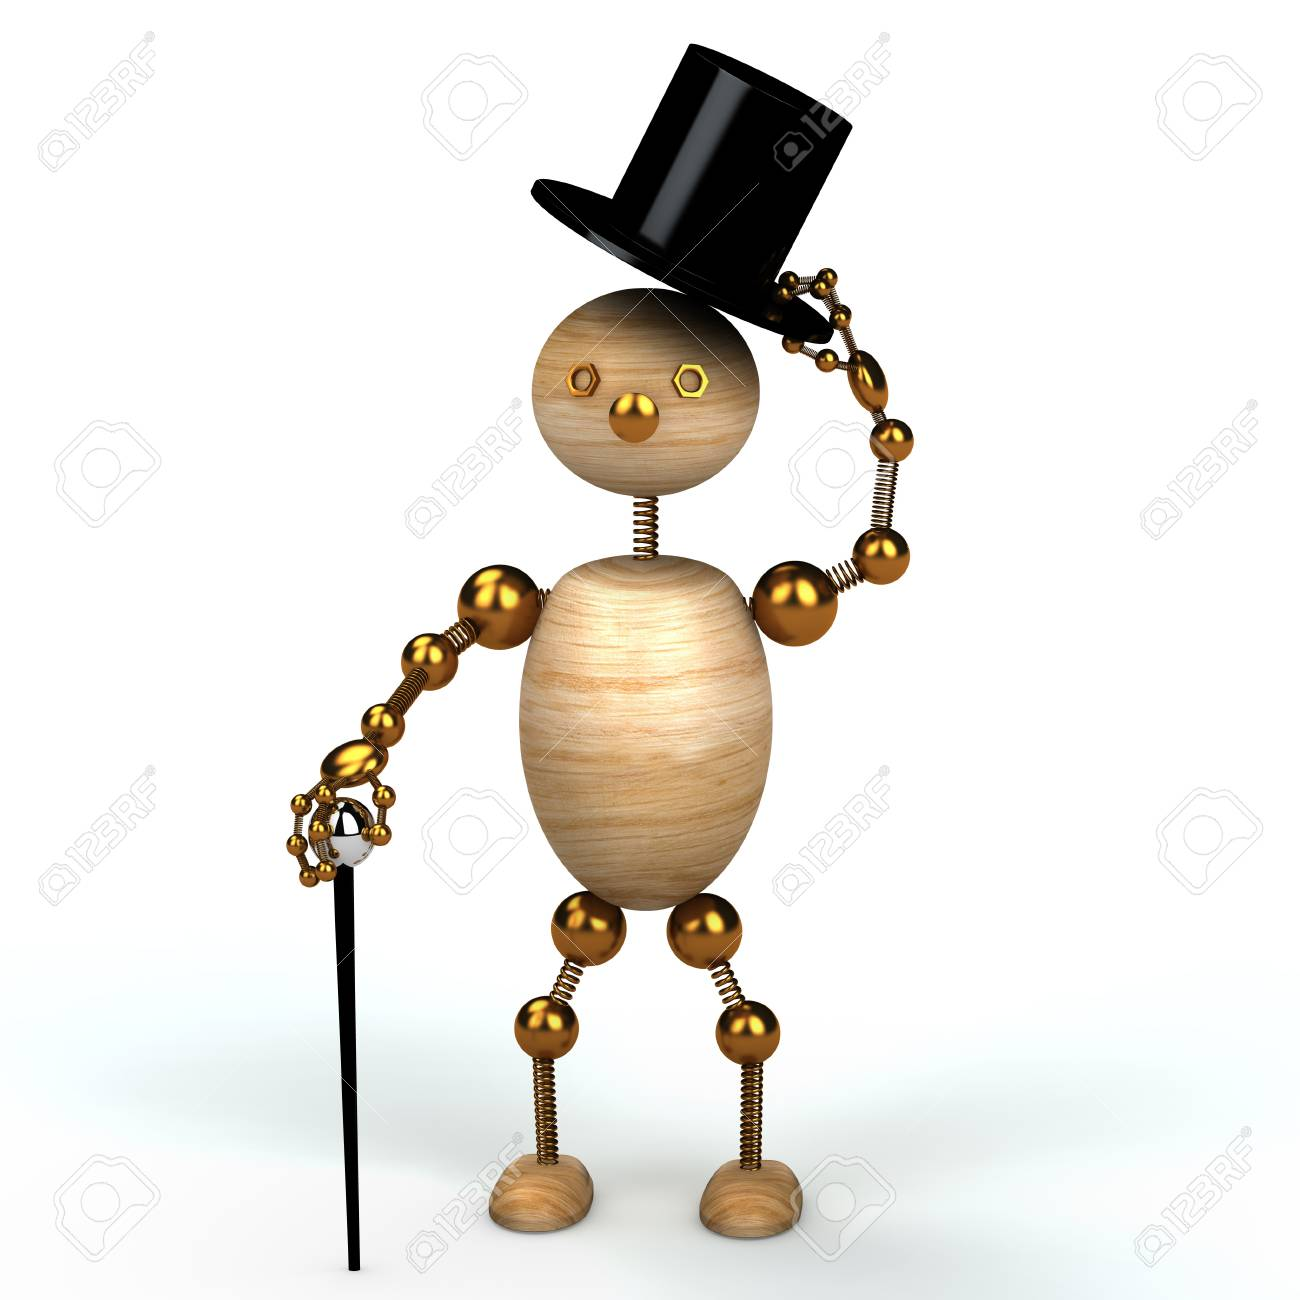 Gentelman wood man 3d rendered for web Stock Photo - 8583554